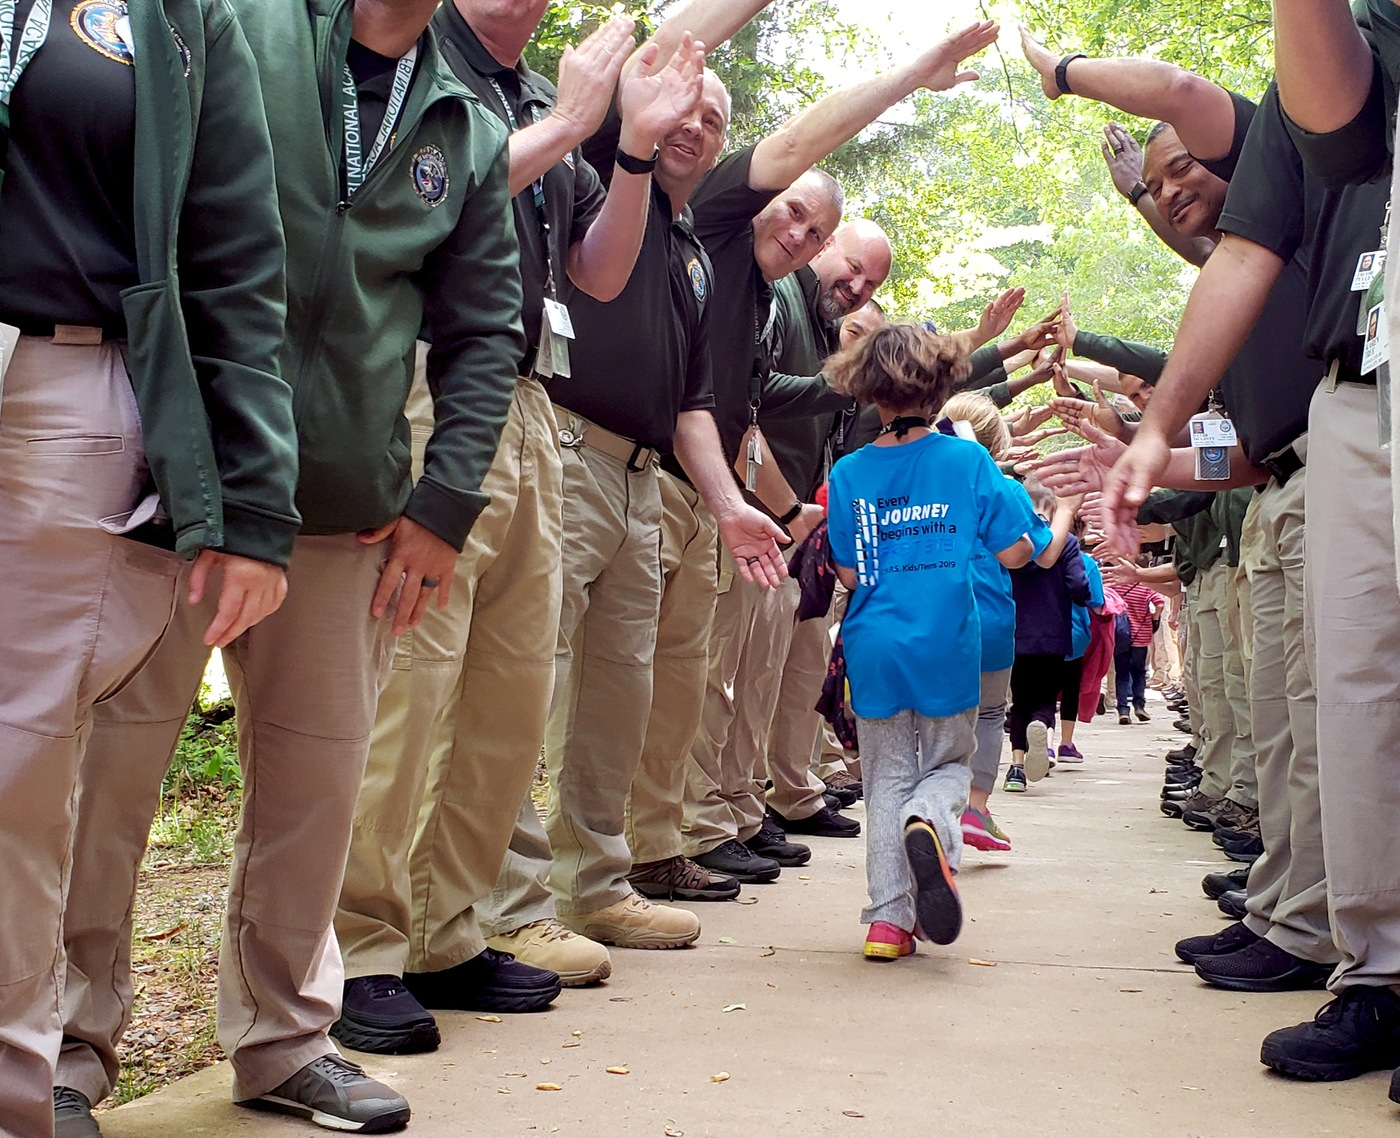 Children of fallen officers run through a tunnel composed of FBI National Academy Students at the FBI Academy in Quantico, Virginia, during a May 14, 2019 event organized by the National Academy and the non-profit Concerns of Police Survivors (C.O.P.S).